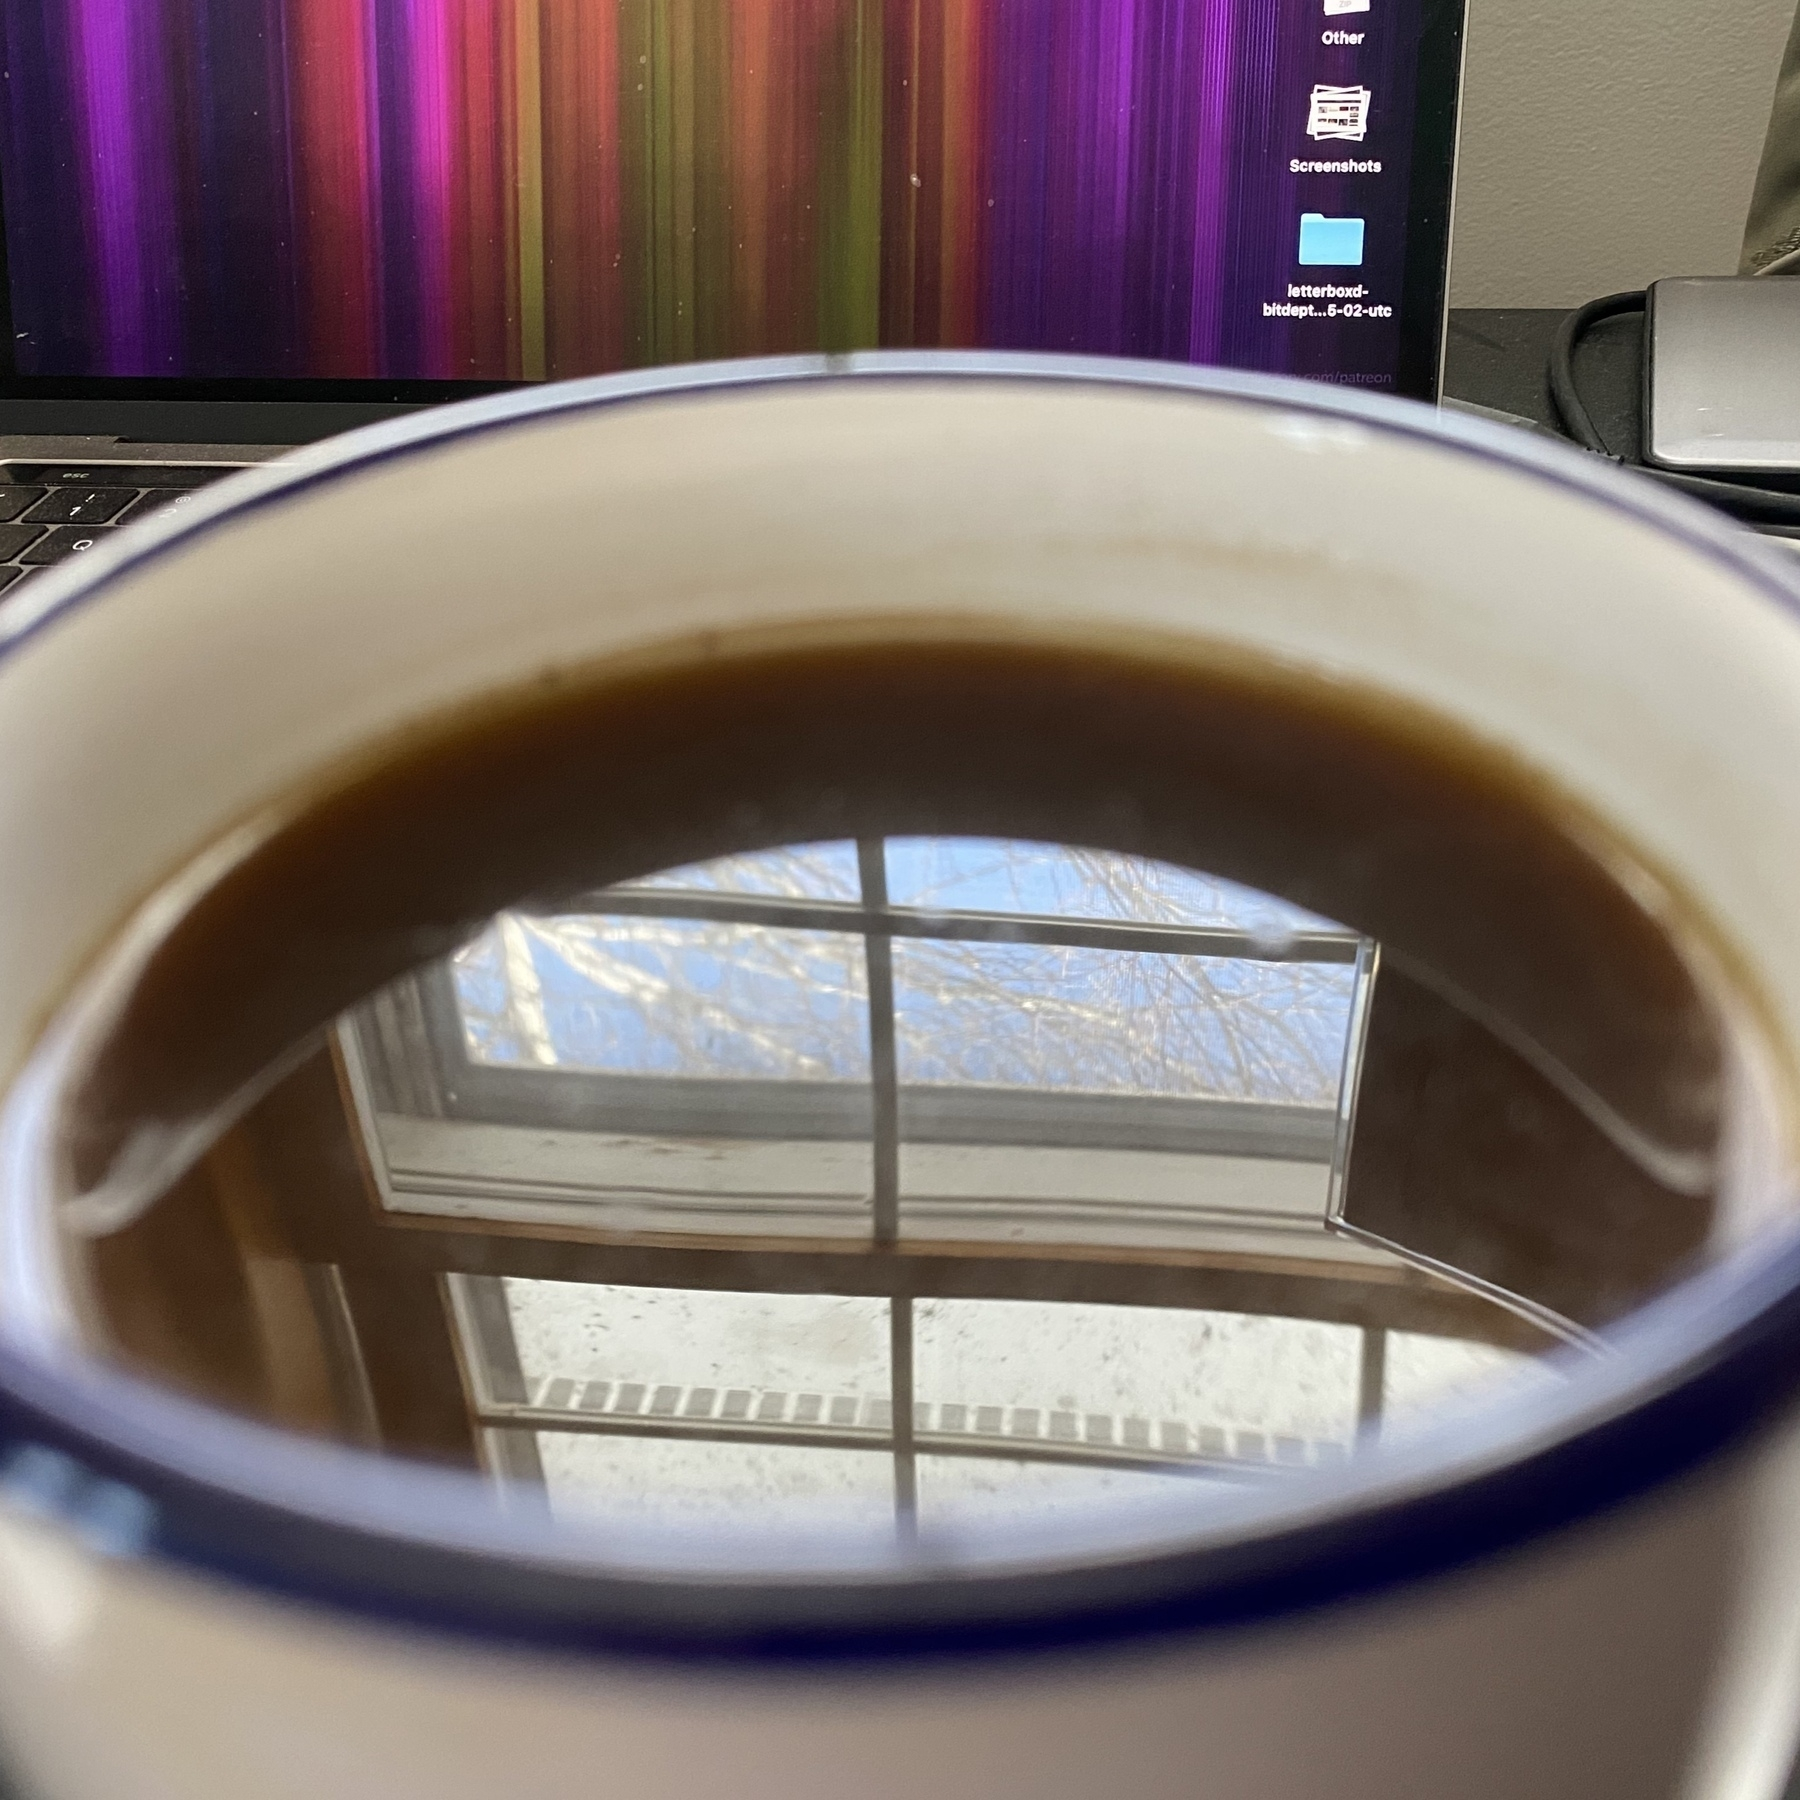 Window reflected in coffee in mug.